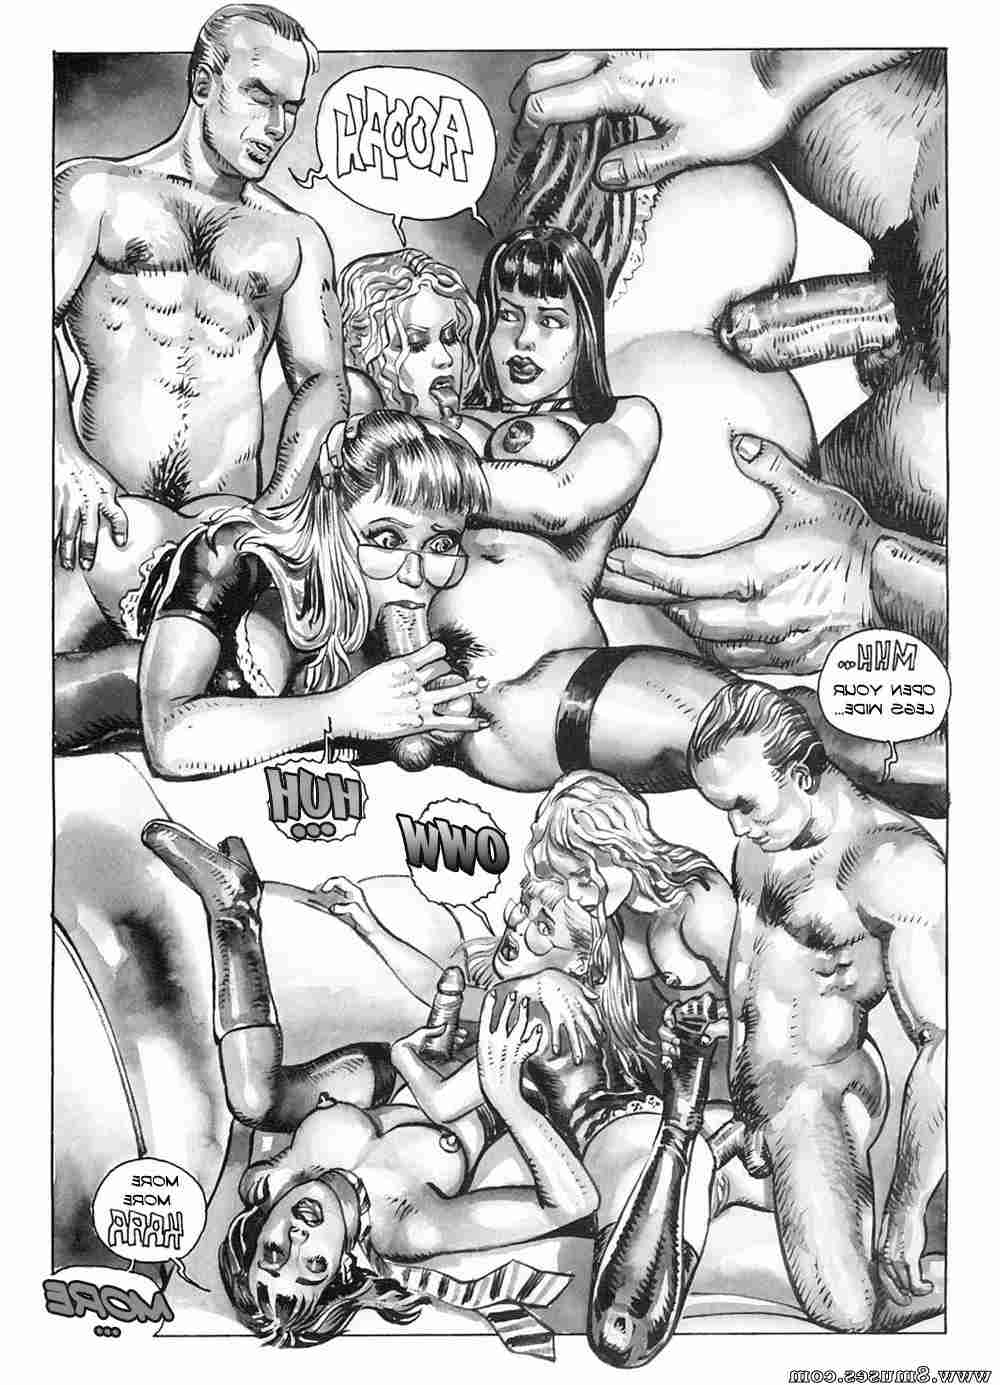 Bruno-Coq-Comics/The-Secretary The_Secretary__8muses_-_Sex_and_Porn_Comics_28.jpg